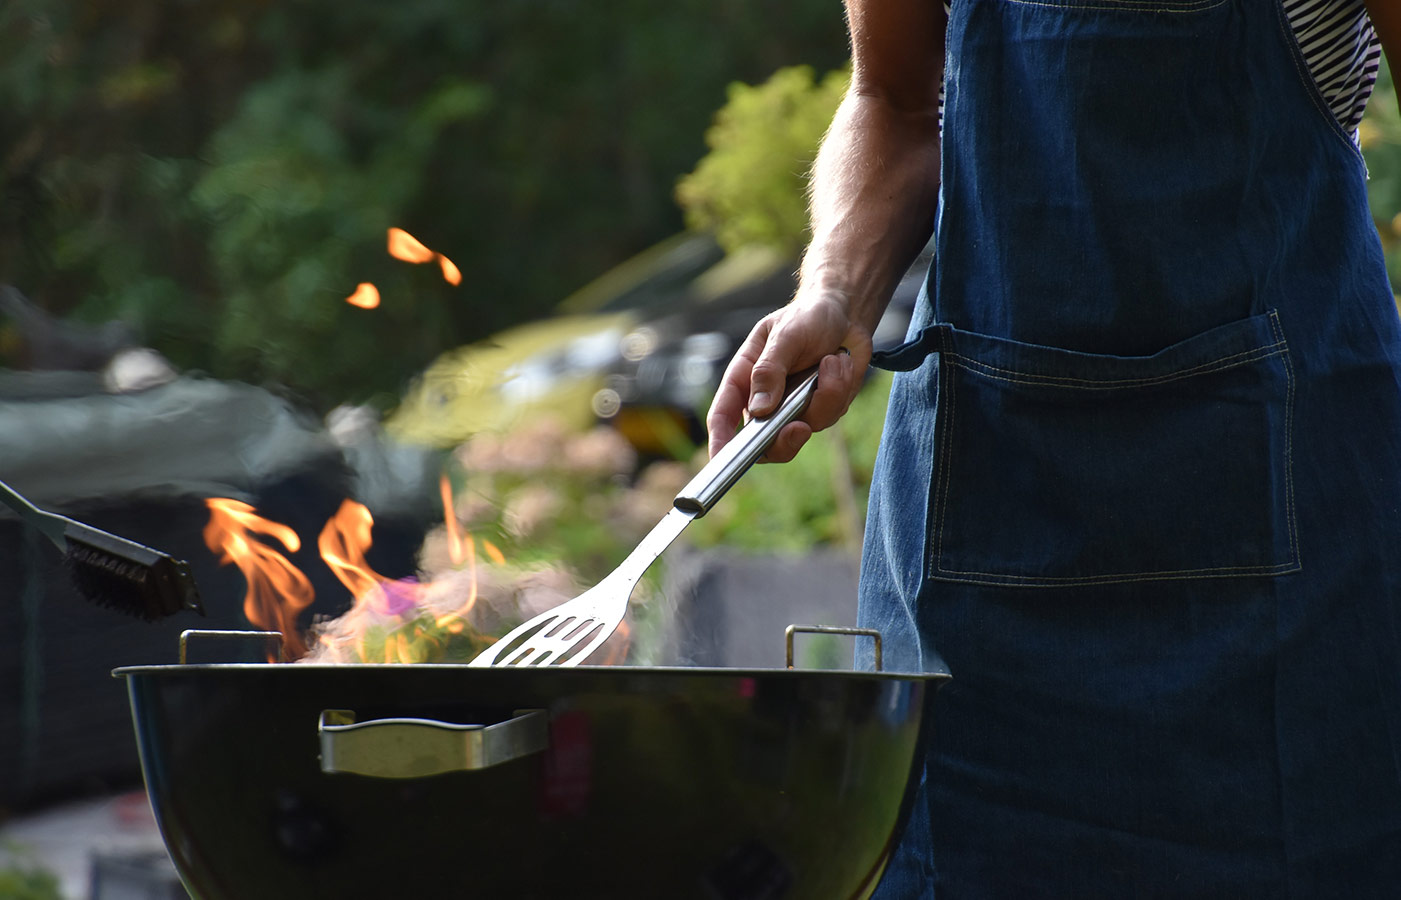 Man grilling on a BBQ.